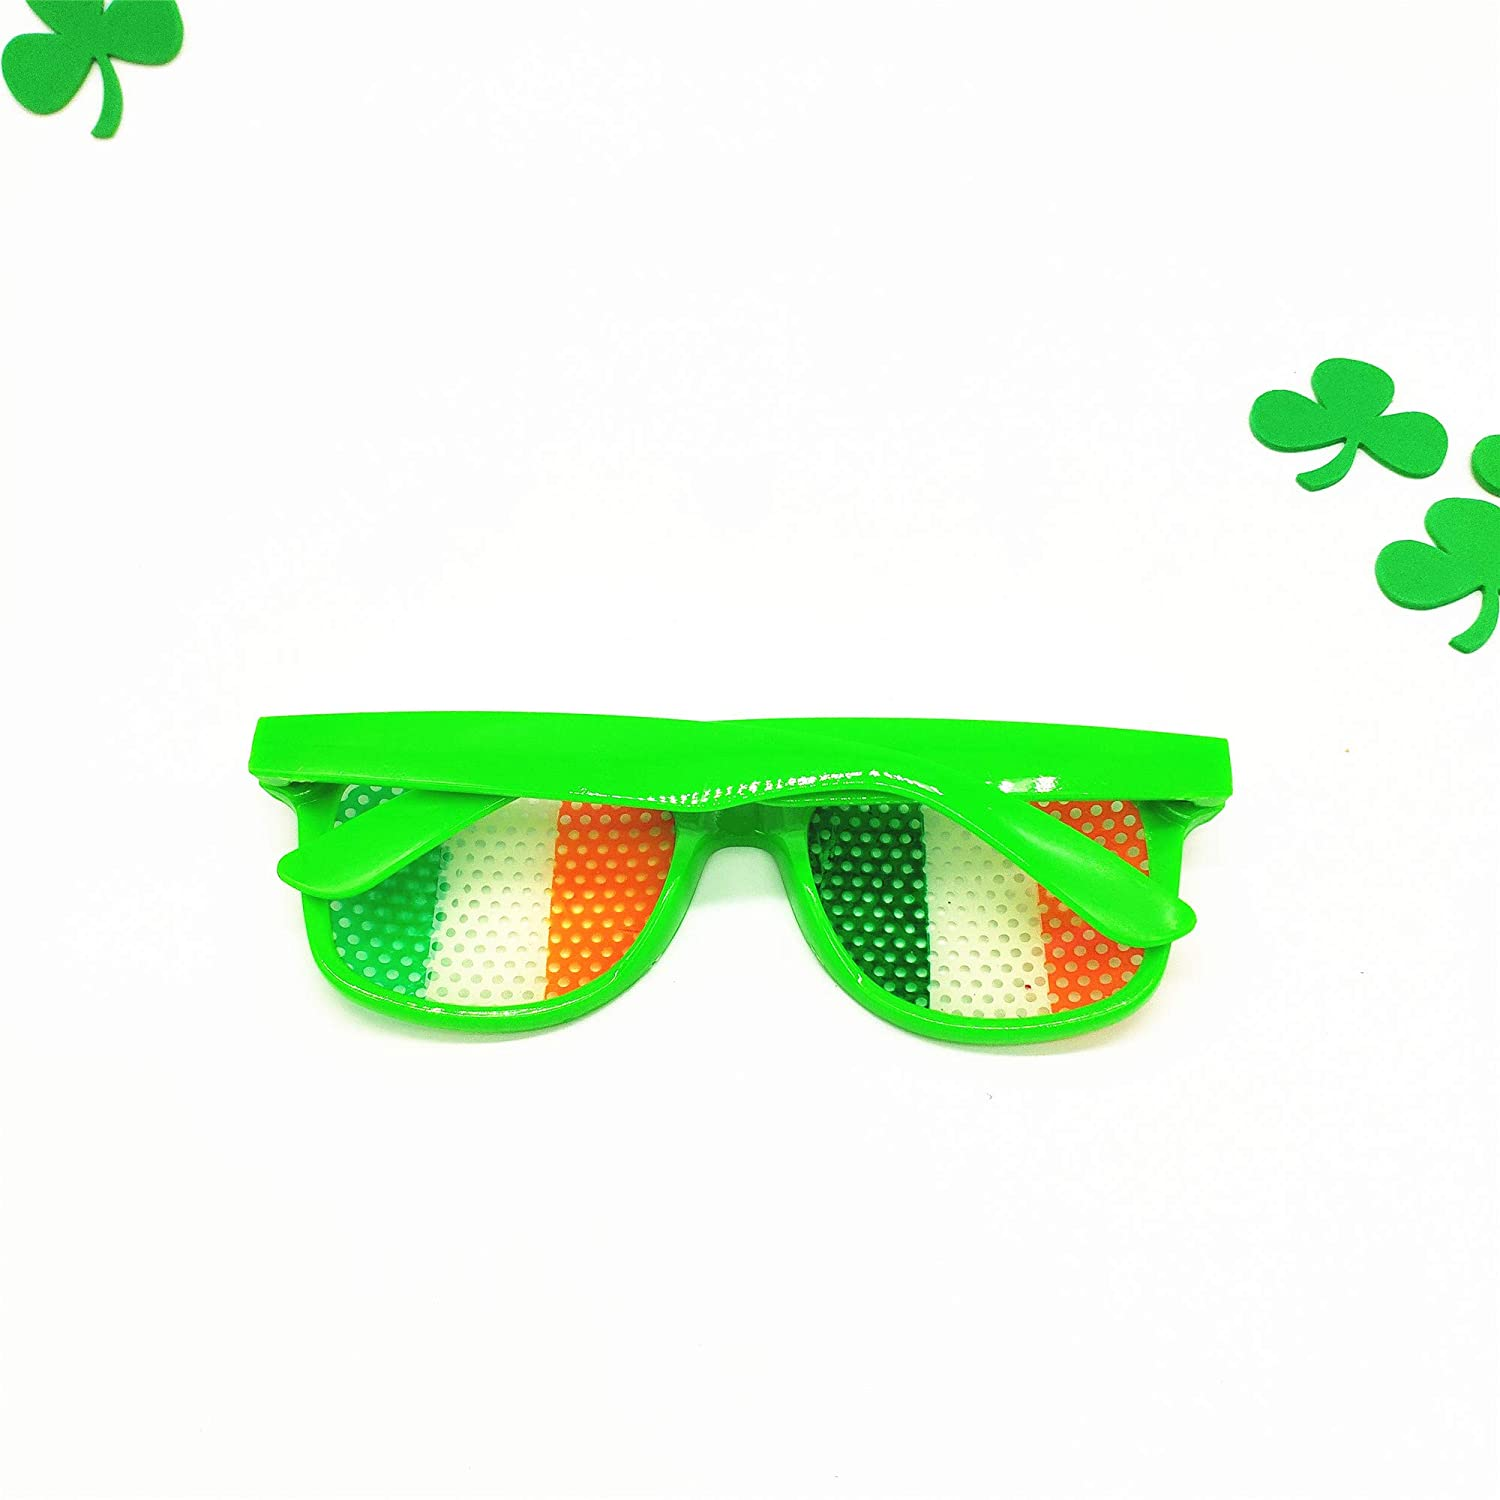 Men's Eyewear Frames Funny Shamrock Design Sunglasses Creative Holiday Cosplay Costume Glasses Accessory